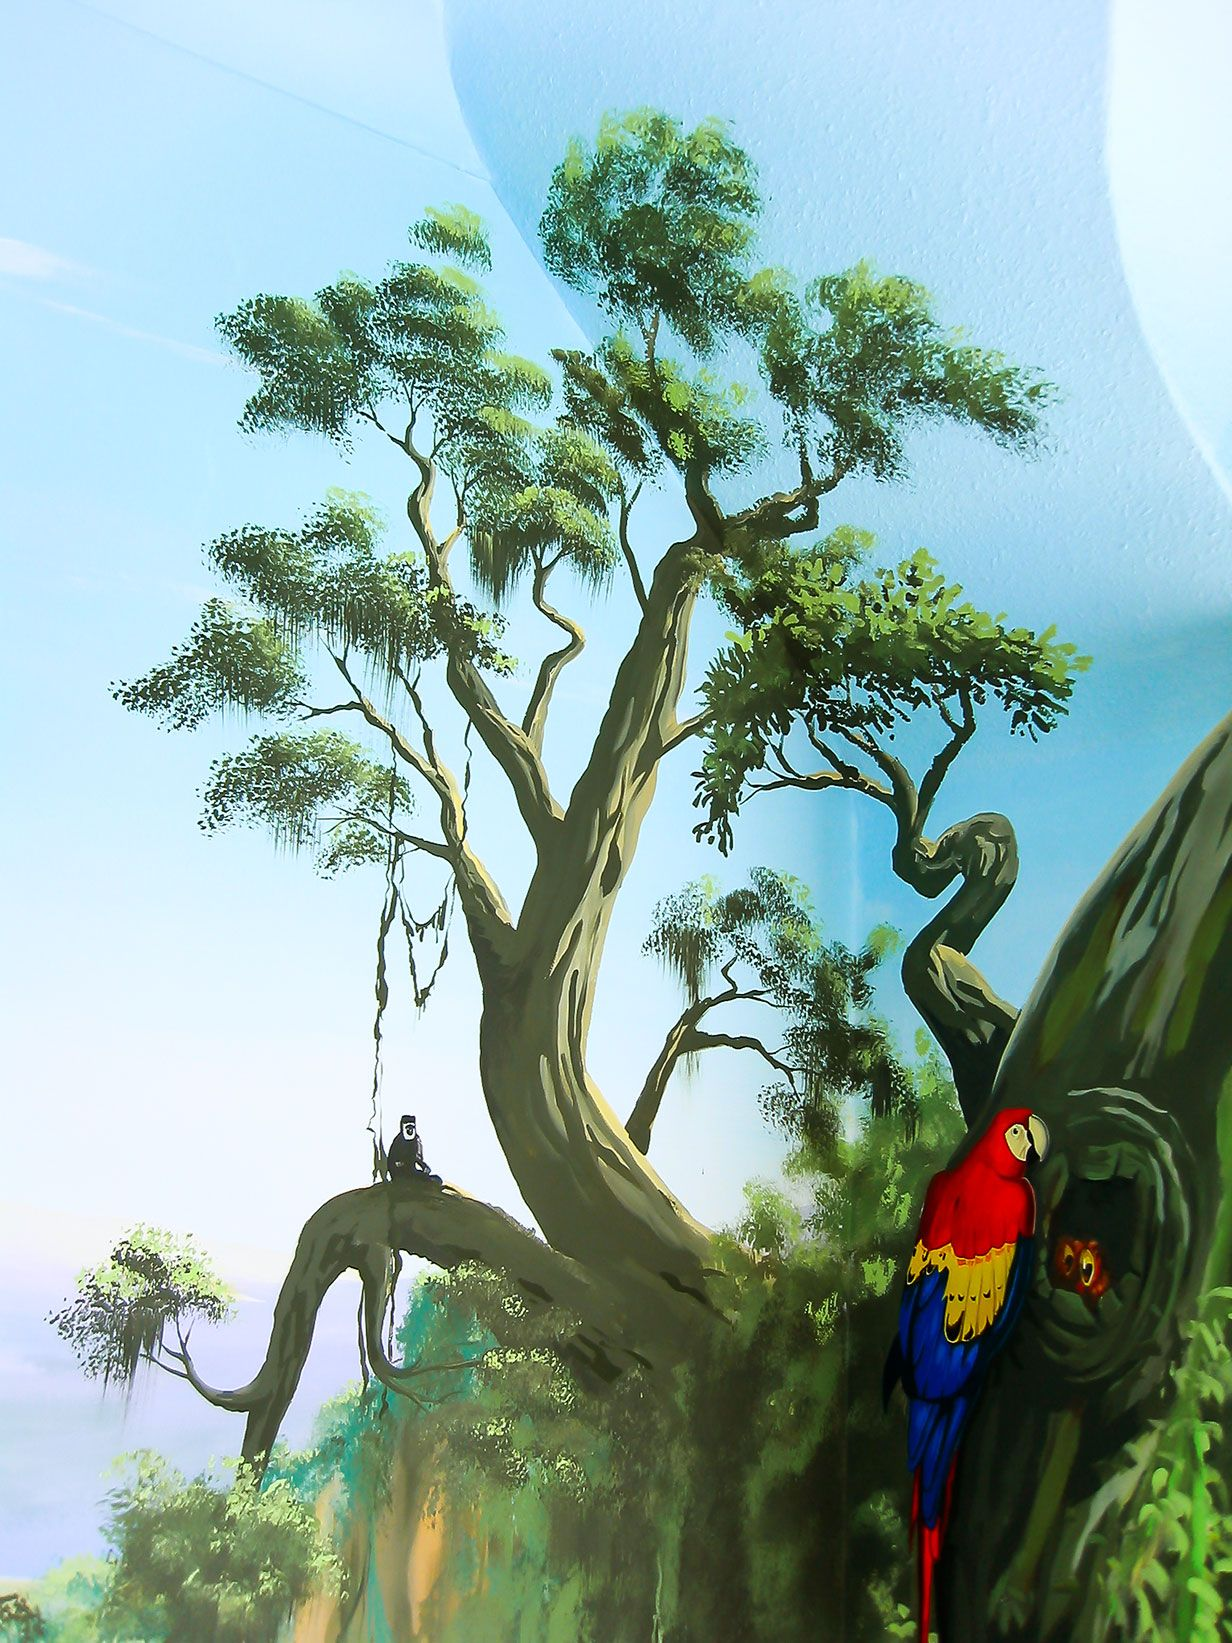 Parrot and a monkey in a couple of trees Jungle mural